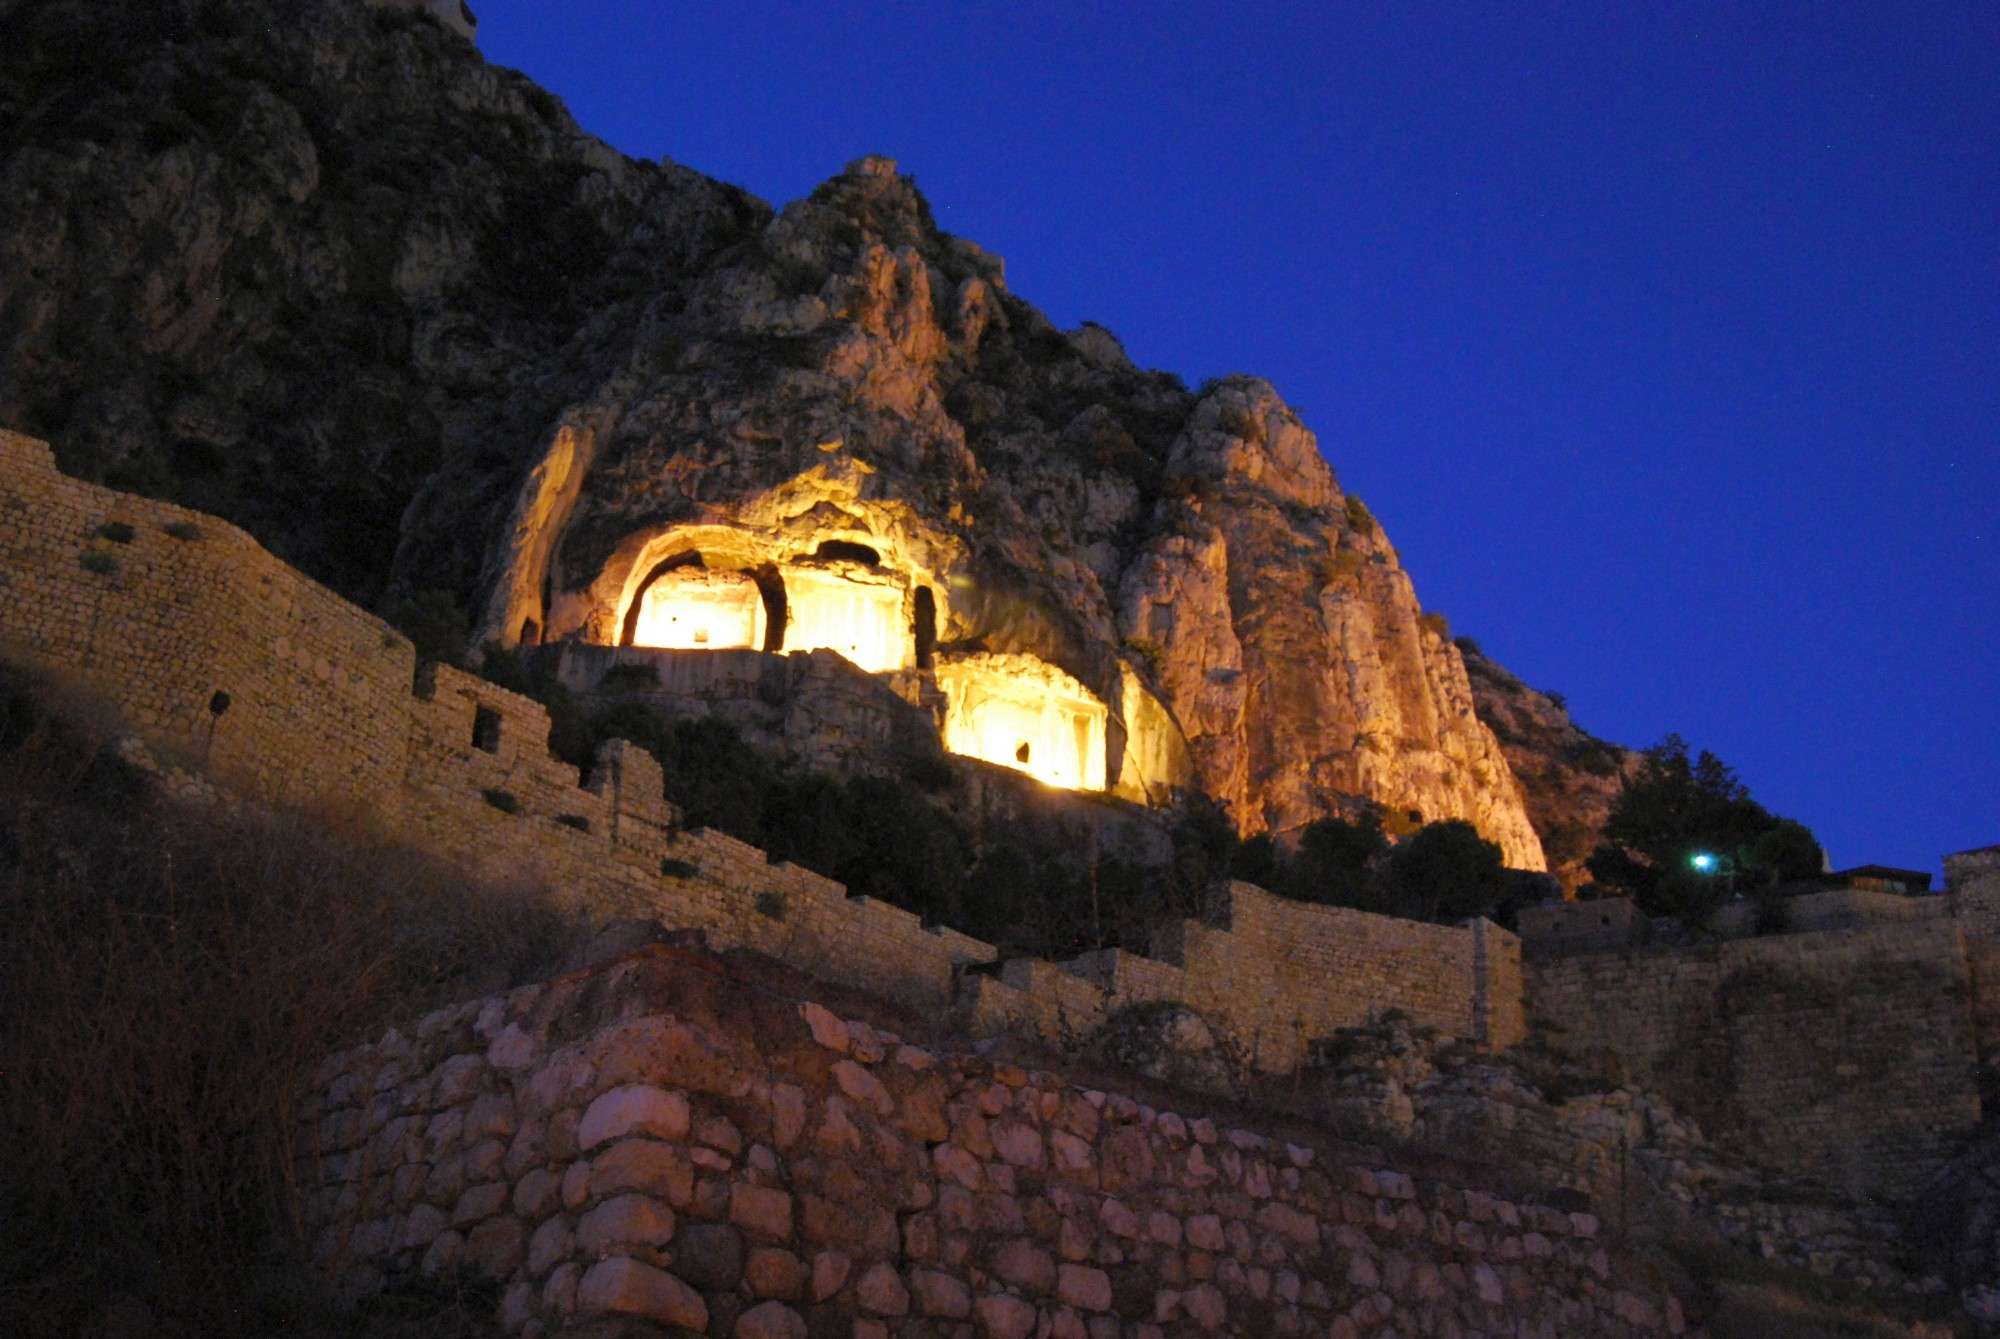 The rock-tombs of the Pontic Kings in Amasya